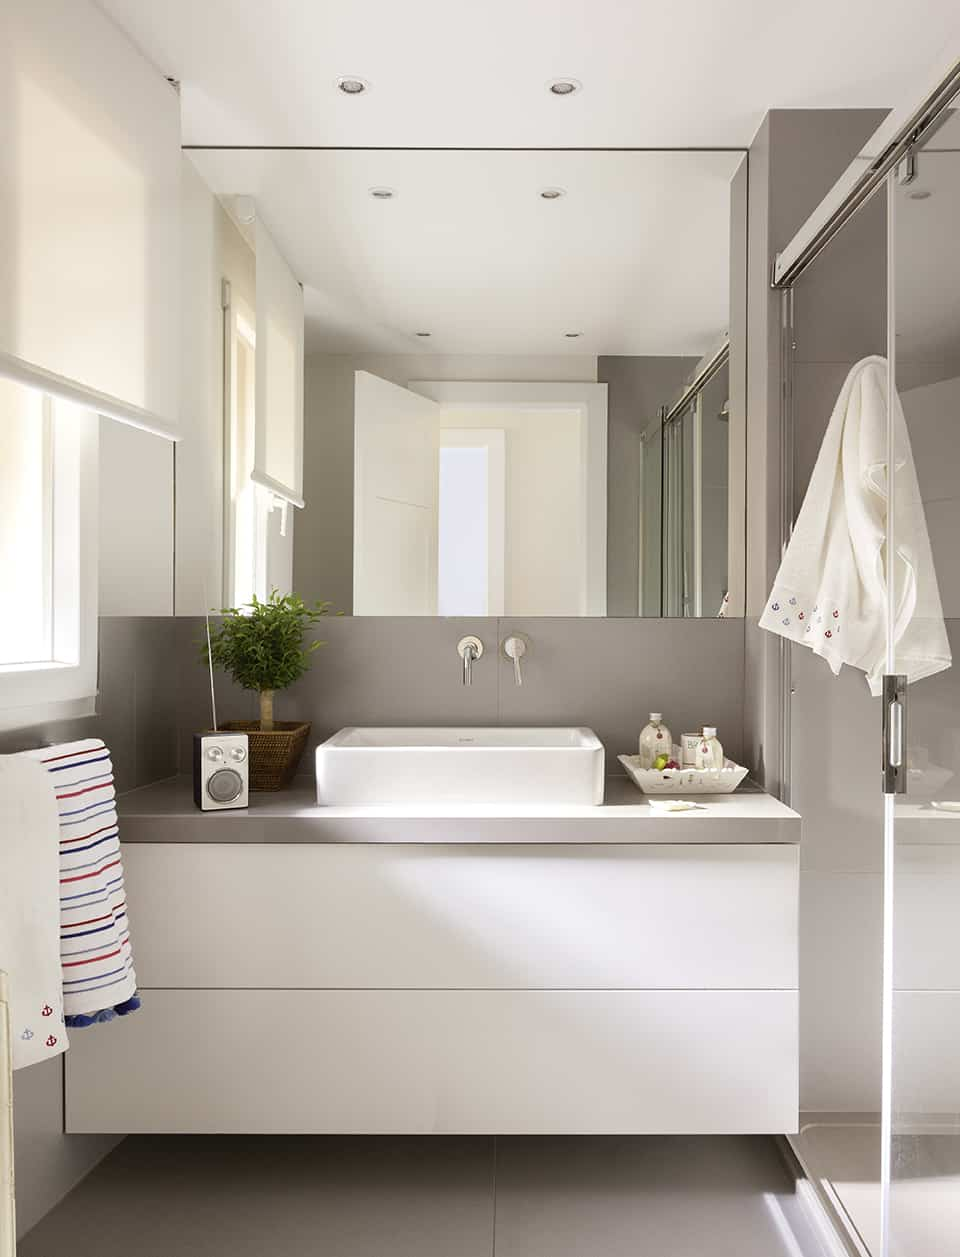 Bathroom mirrors for small spaces